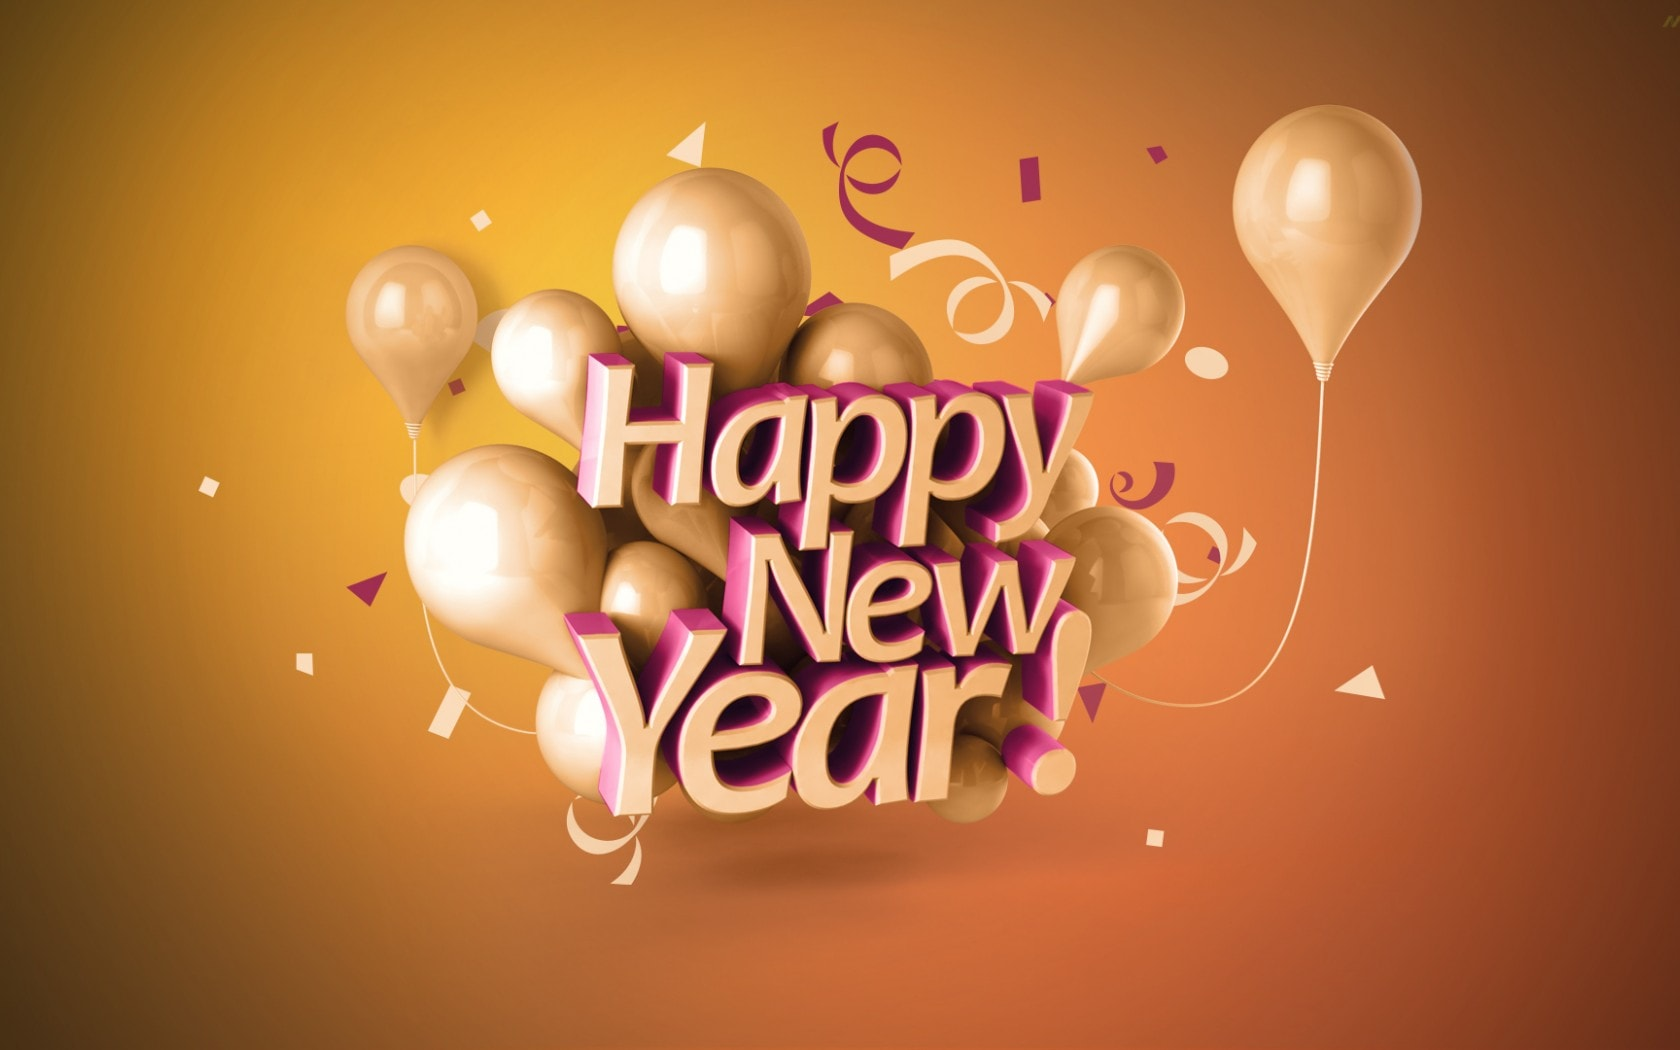 Happy New Year Images Wallpaper